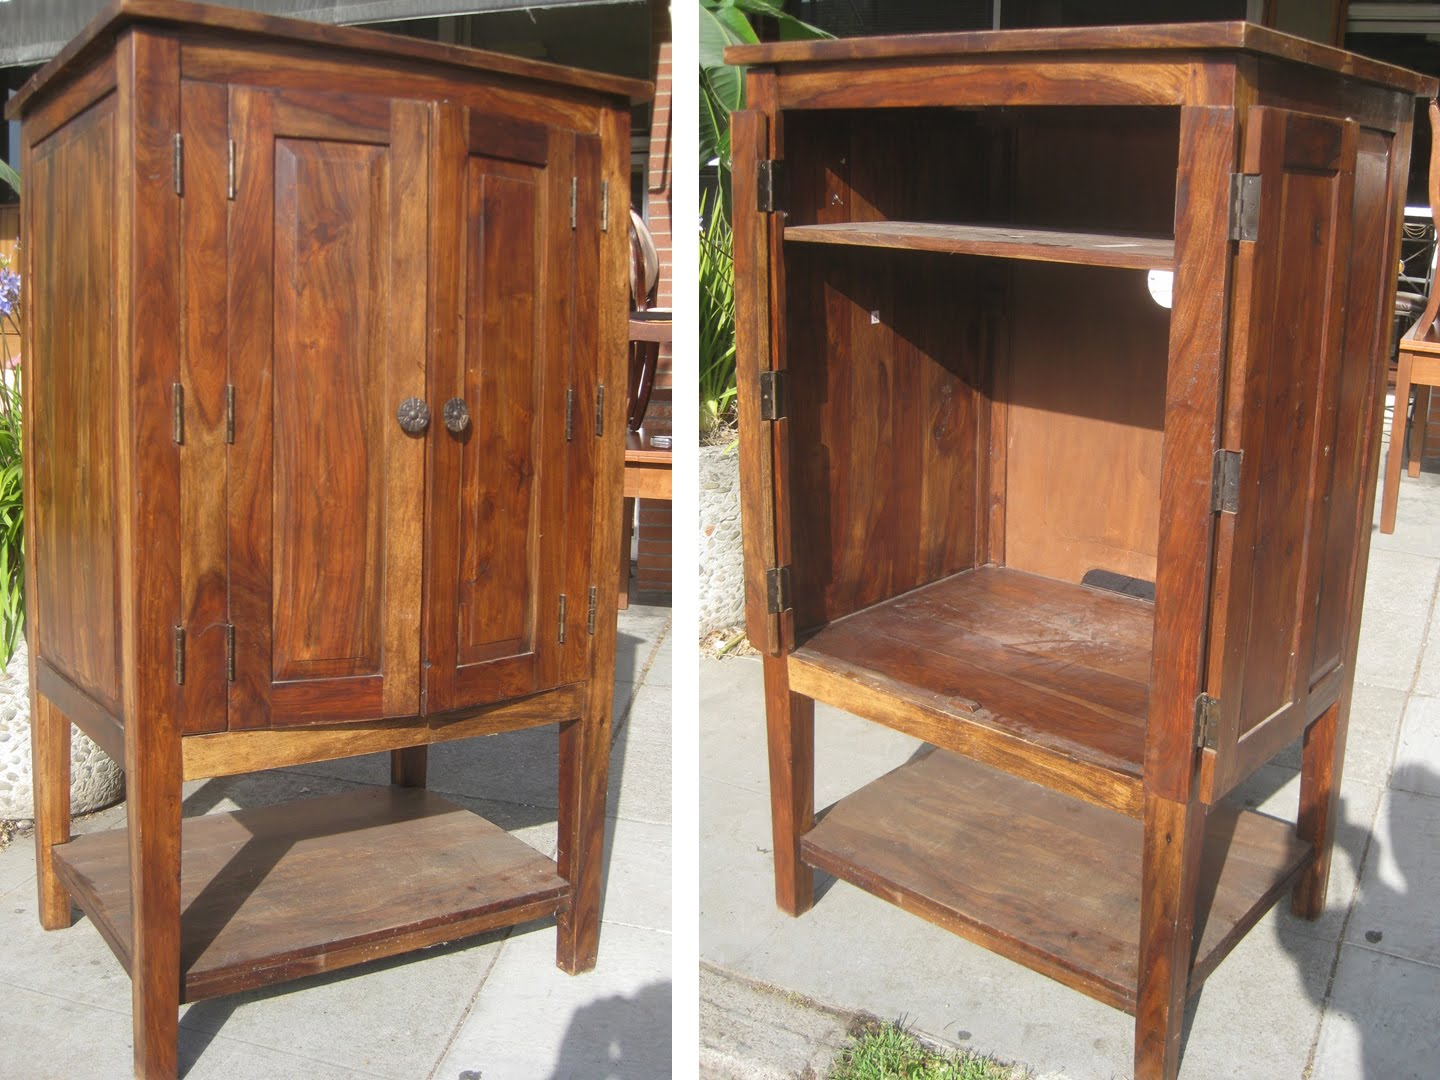 Amazing photo of UHURU FURNITURE & COLLECTIBLES: SOLD Teak TV Armoire $100 with #955E36 color and 1440x1080 pixels